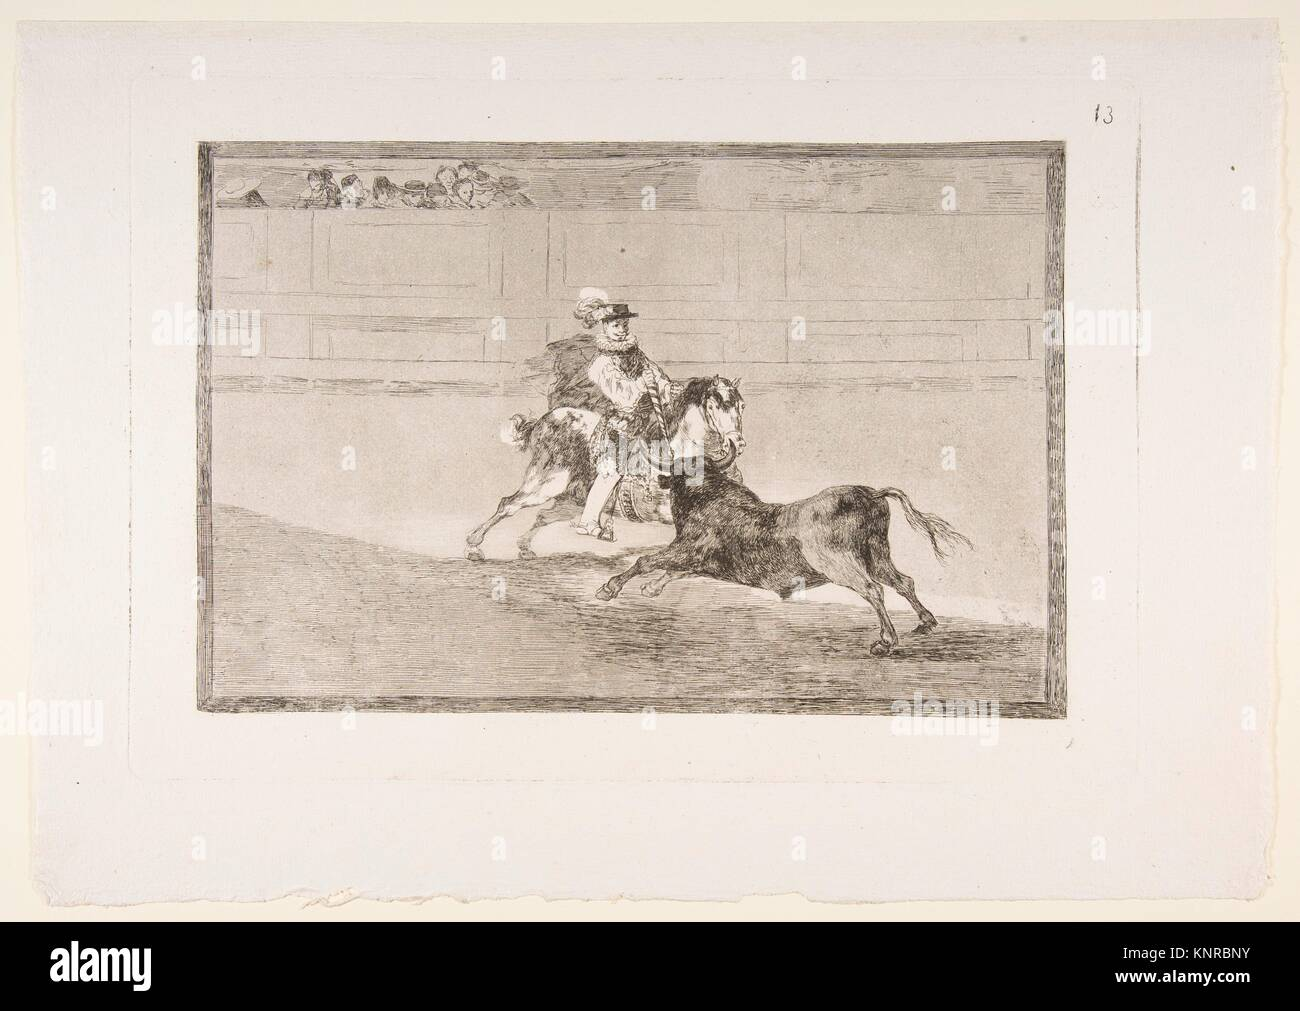 Plate 13 of the ´Tauromaquia´: A Spanish mounted knight in